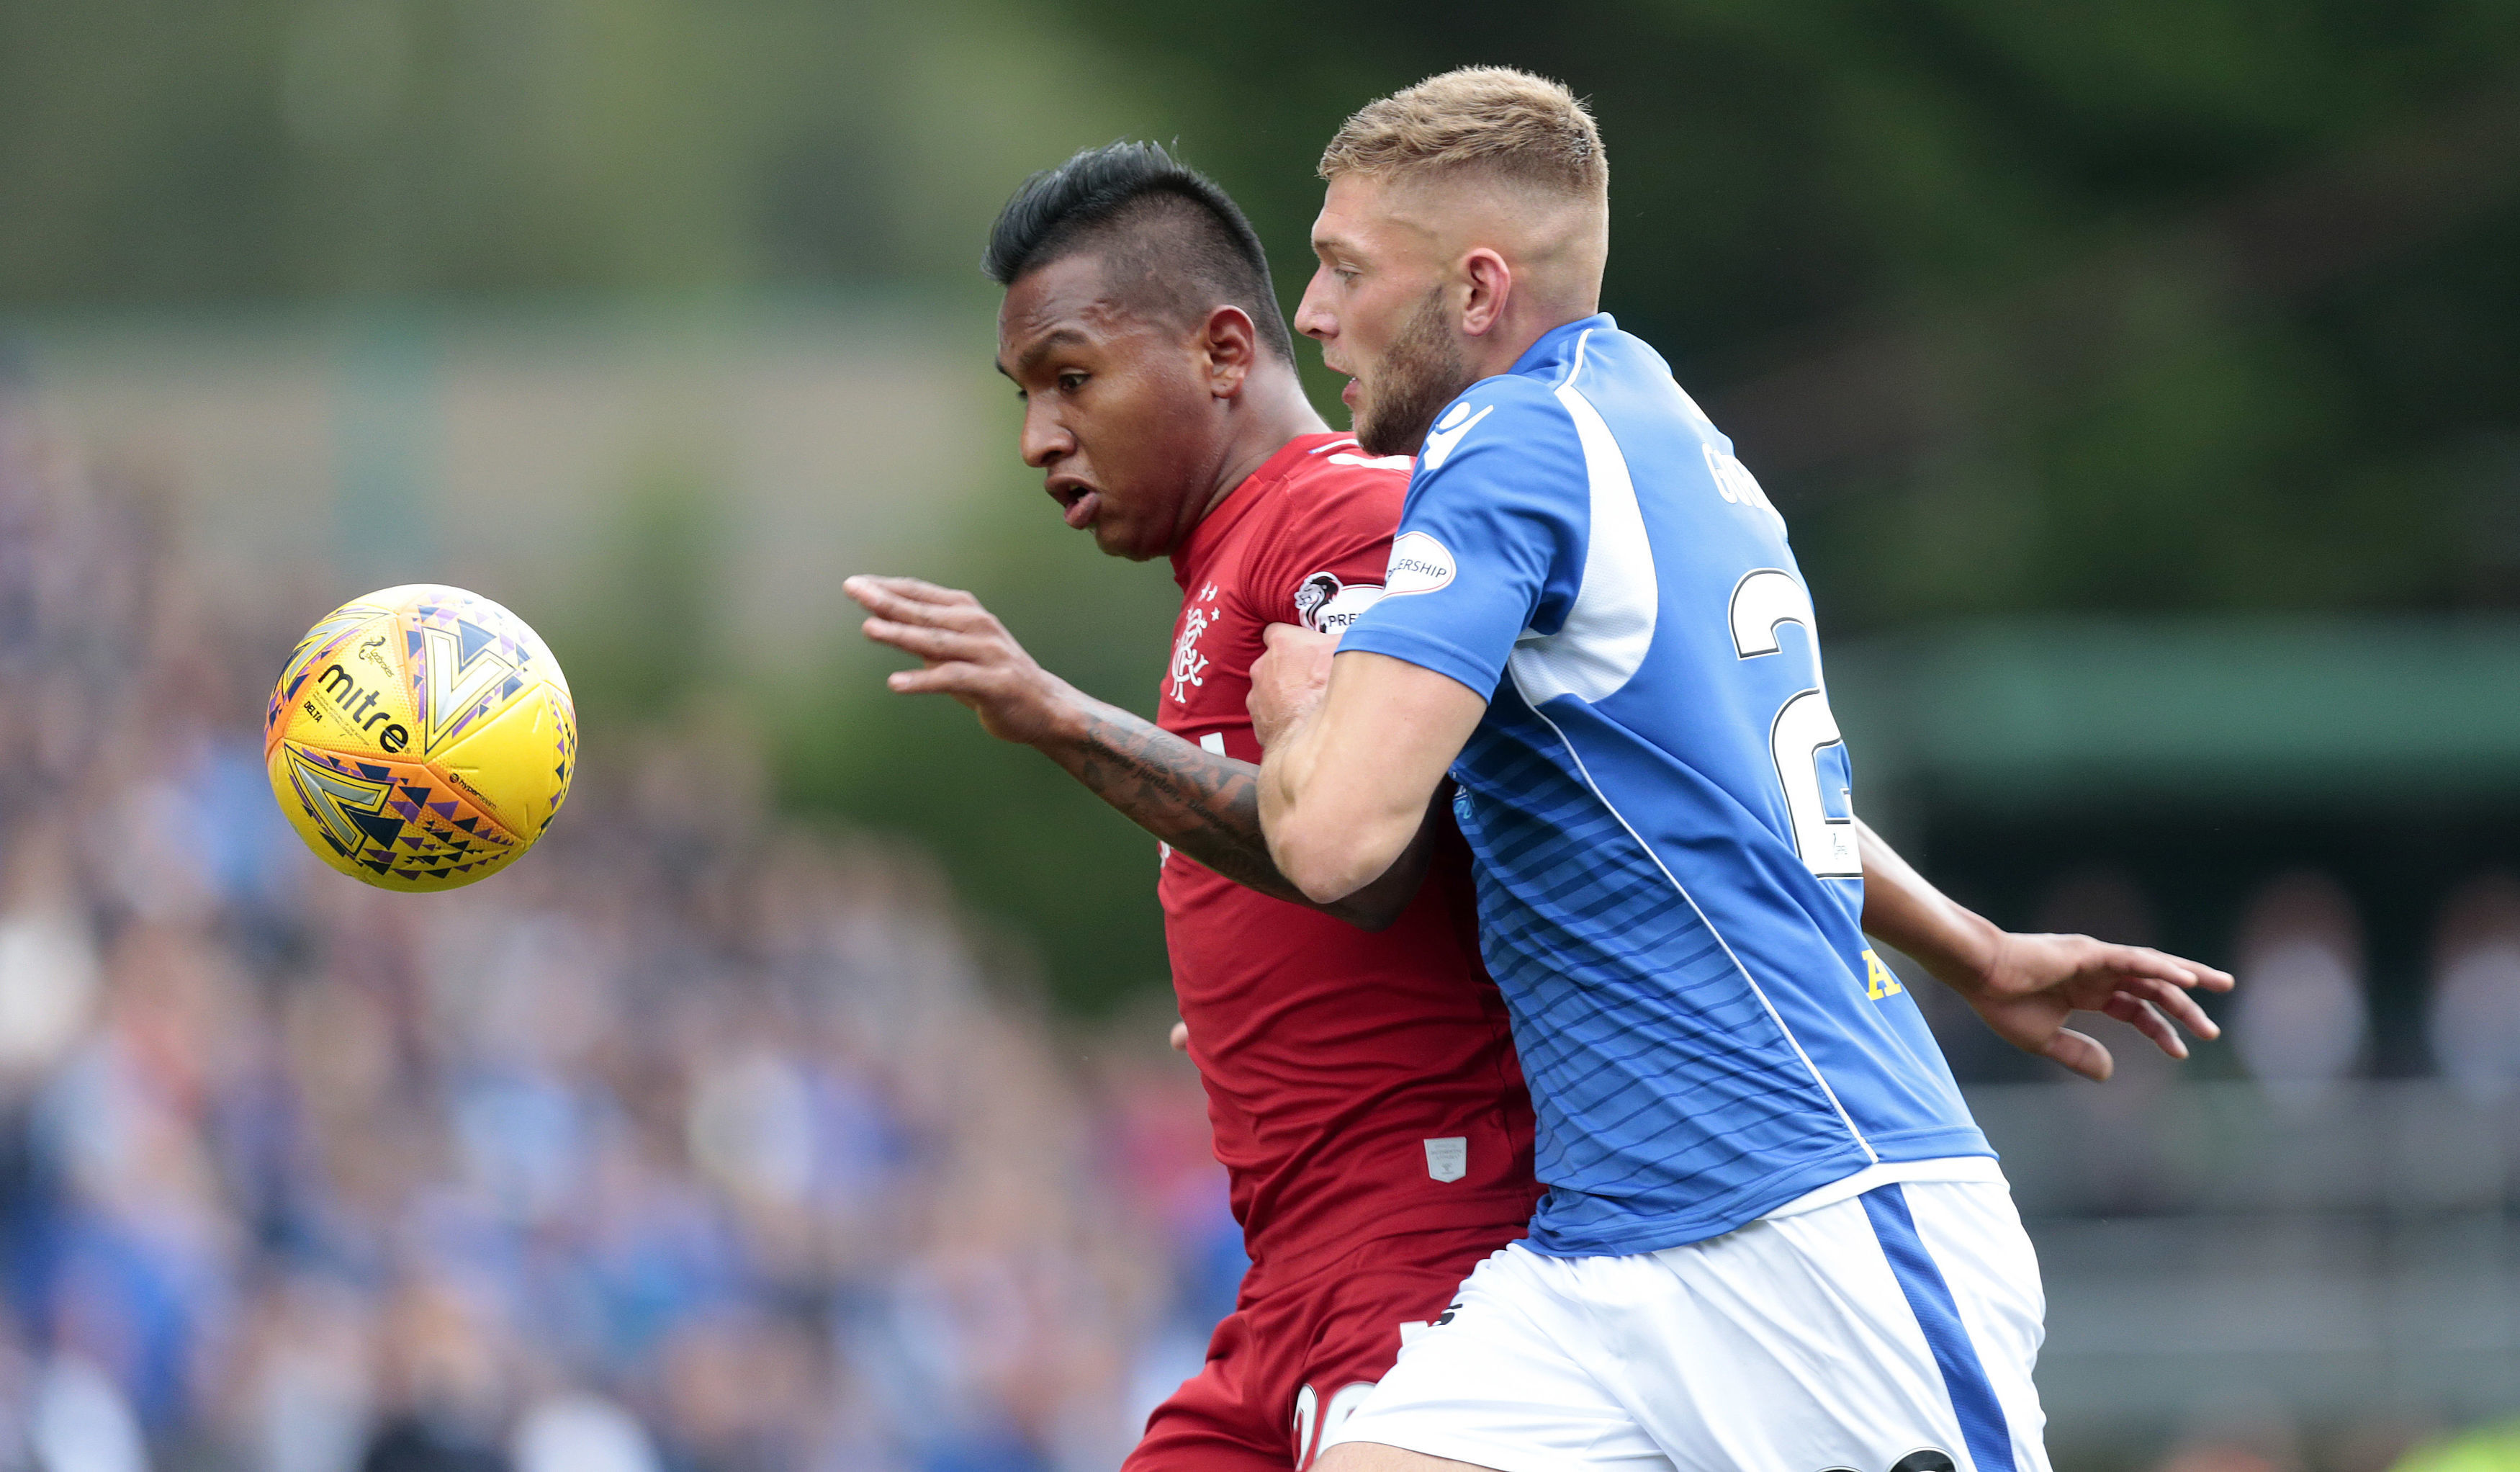 St Johnstone's Liam Gordon (right) vies with Rangers' Alfredo Morelos (left) during the Ladbrokes Scottish Premiership match.